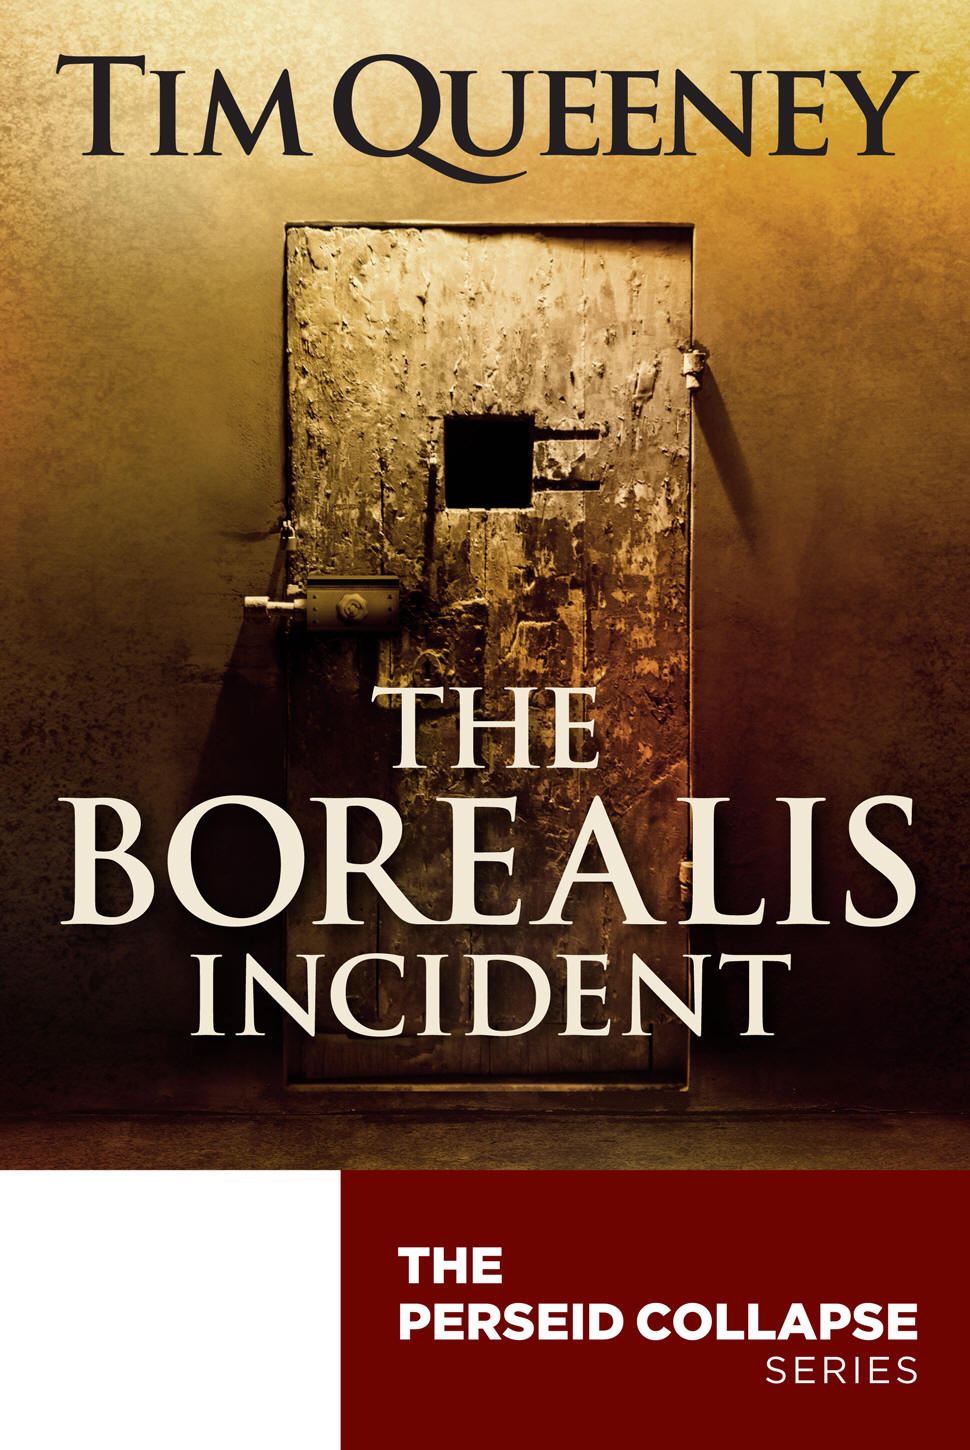 tim queeney the borealis incident